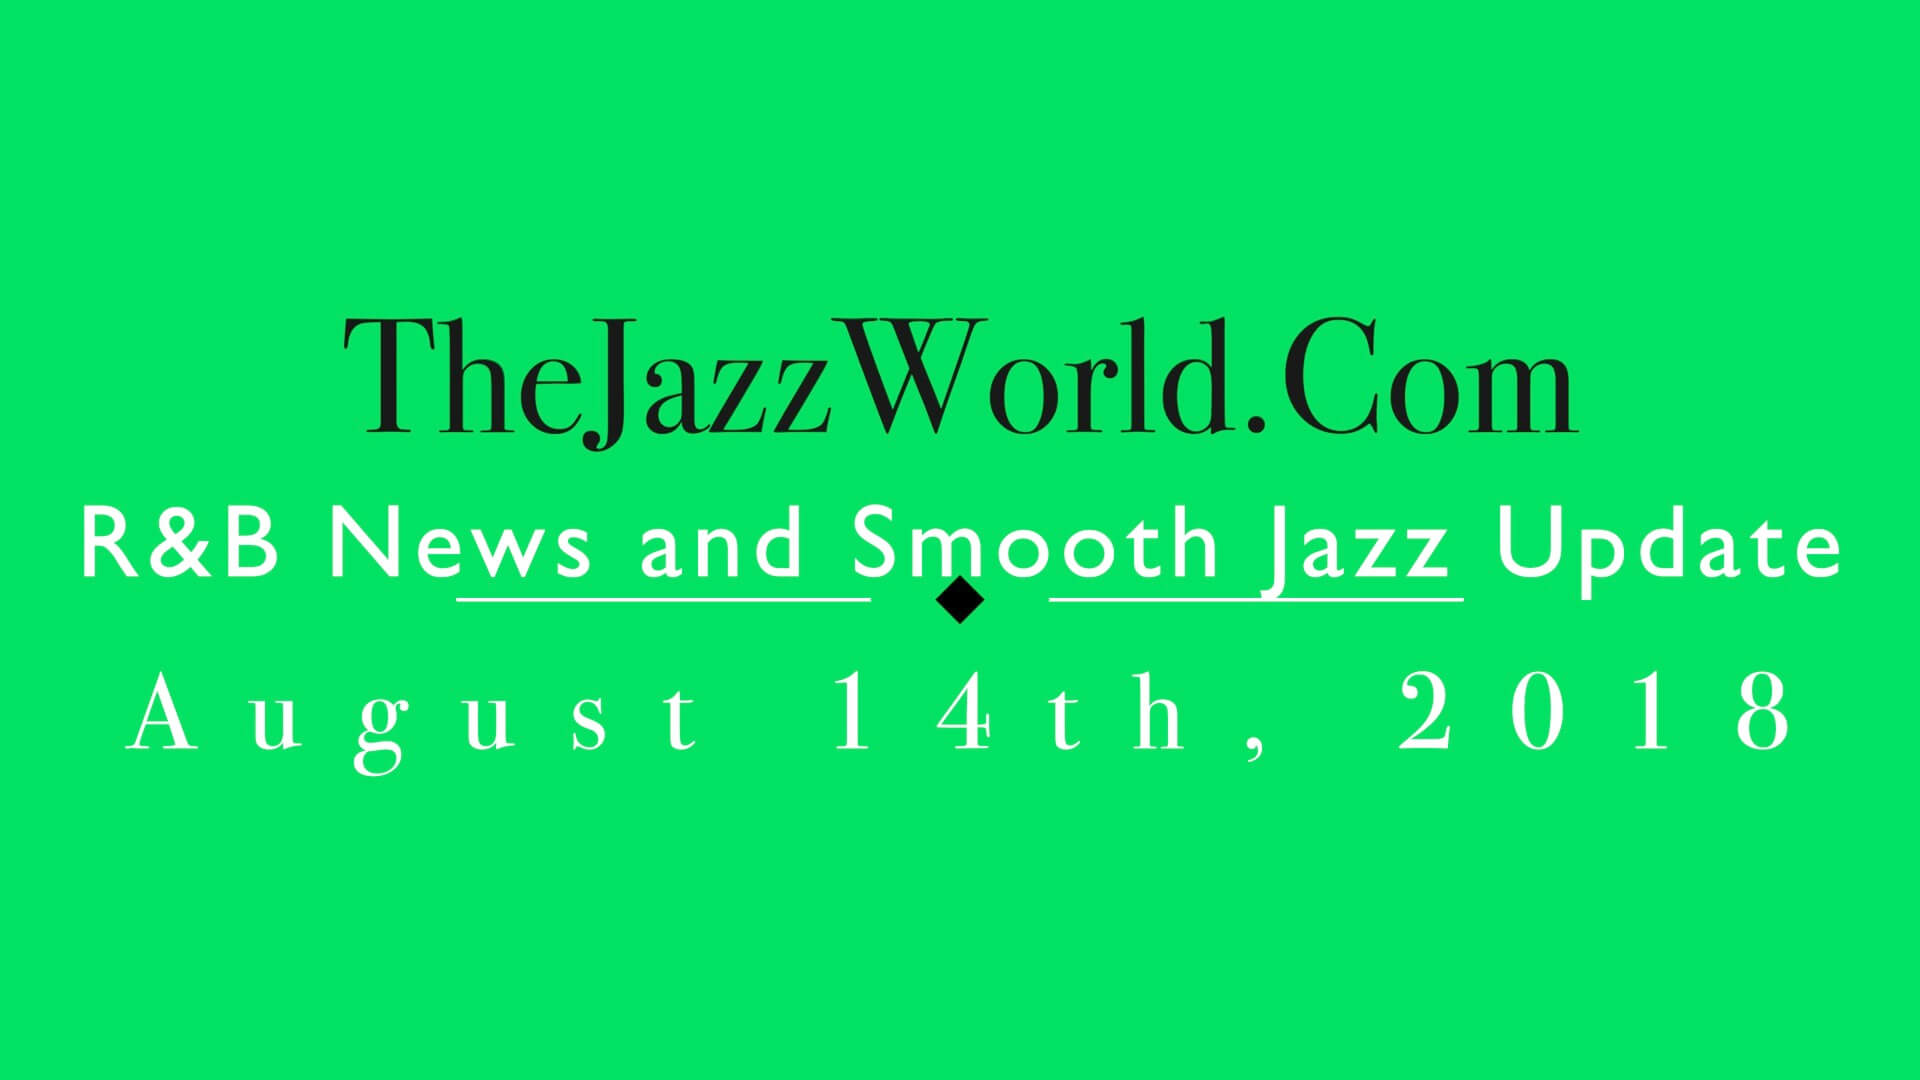 Latest R&B News and Smooth Jazz Update August 14th